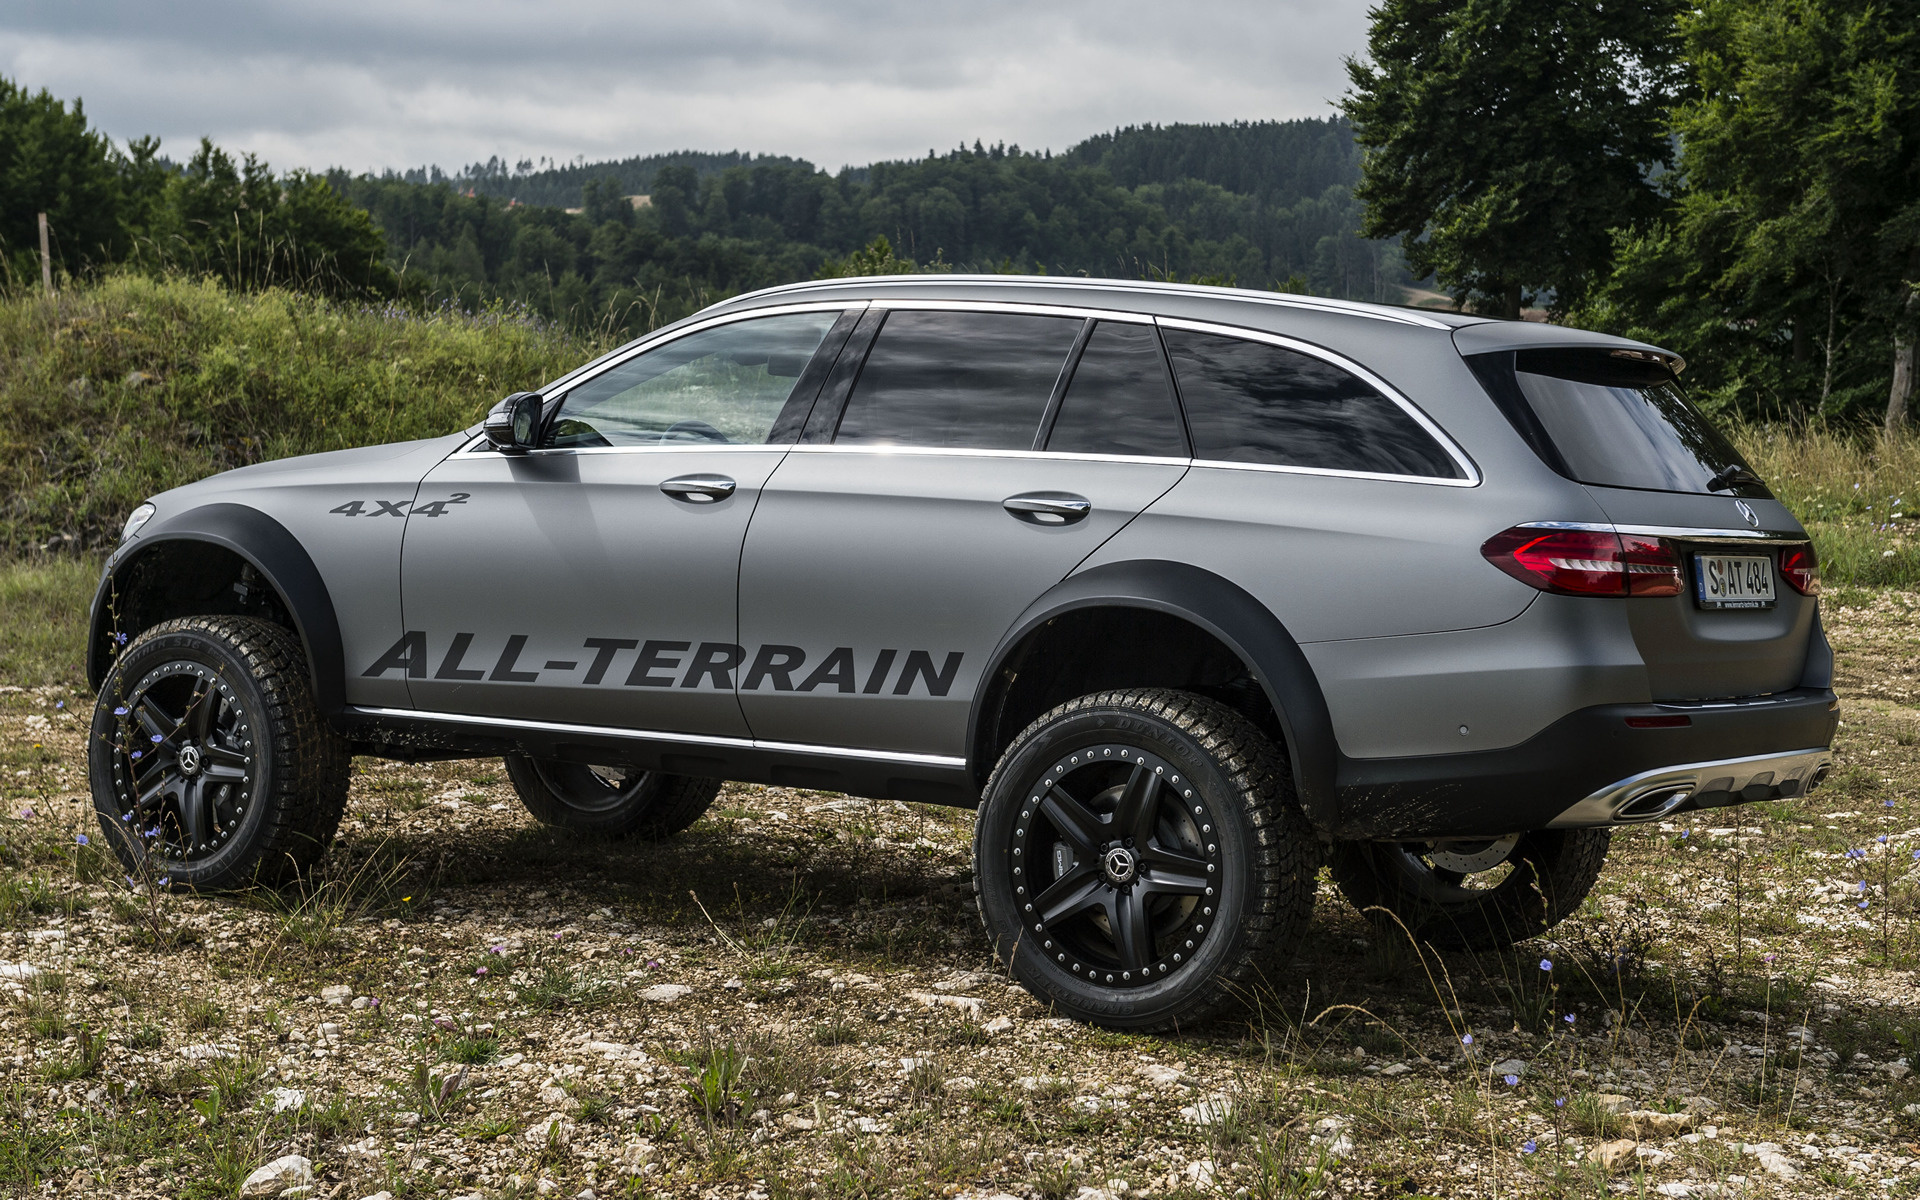 2019 Ram Hd >> Mercedes-Benz E-Class All-Terrain 4x4² (2017) Wallpapers and HD Images - Car Pixel